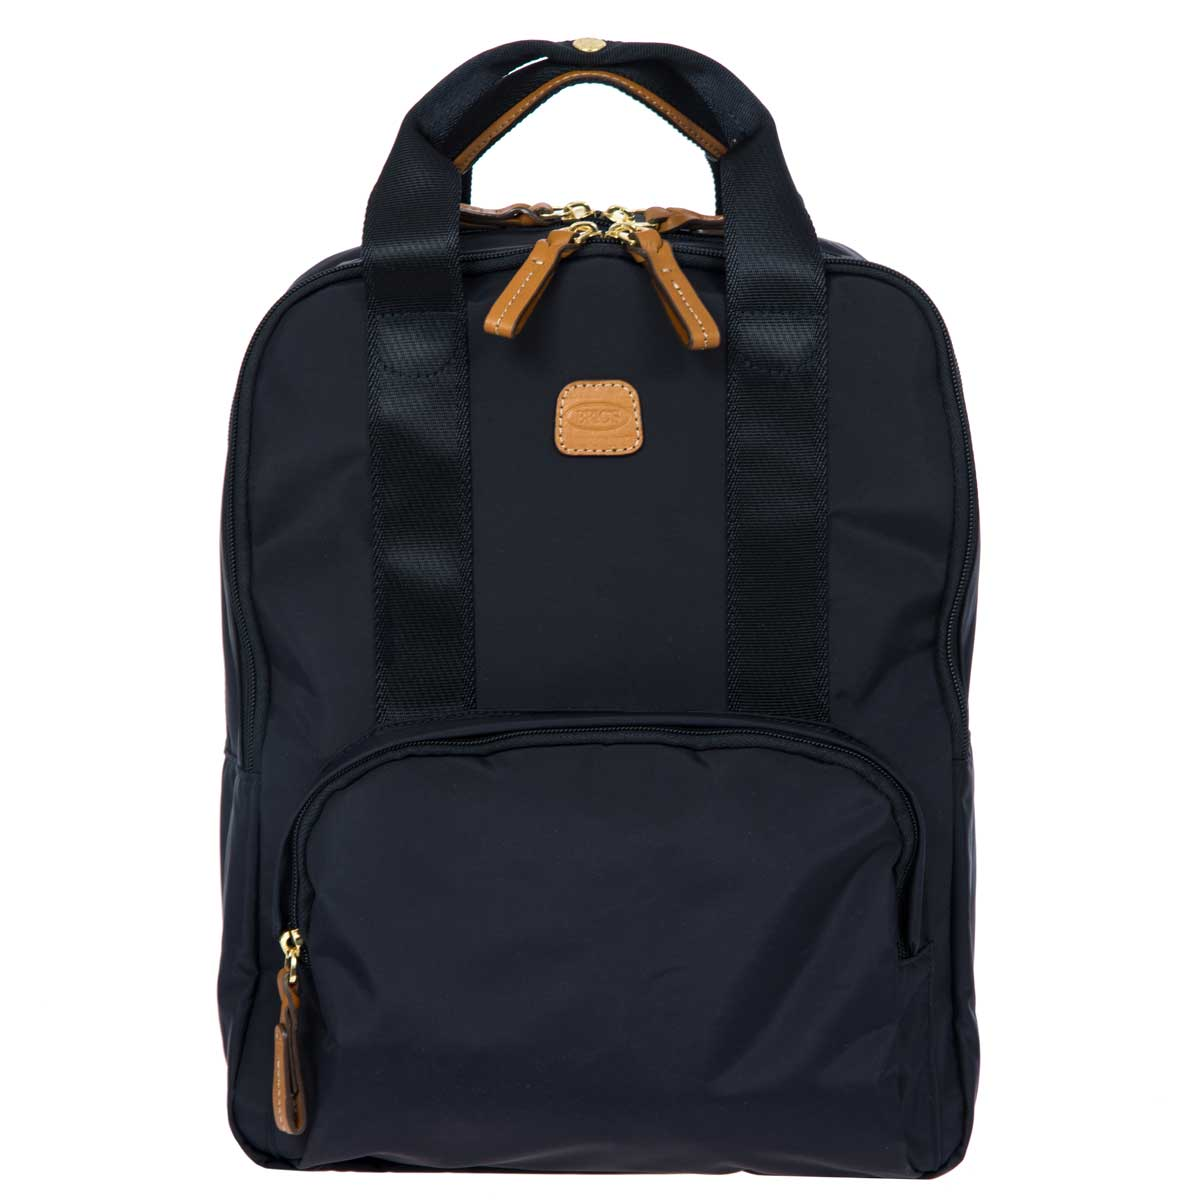 X-Travel Urban Backpack by Brics (Color: Navy)